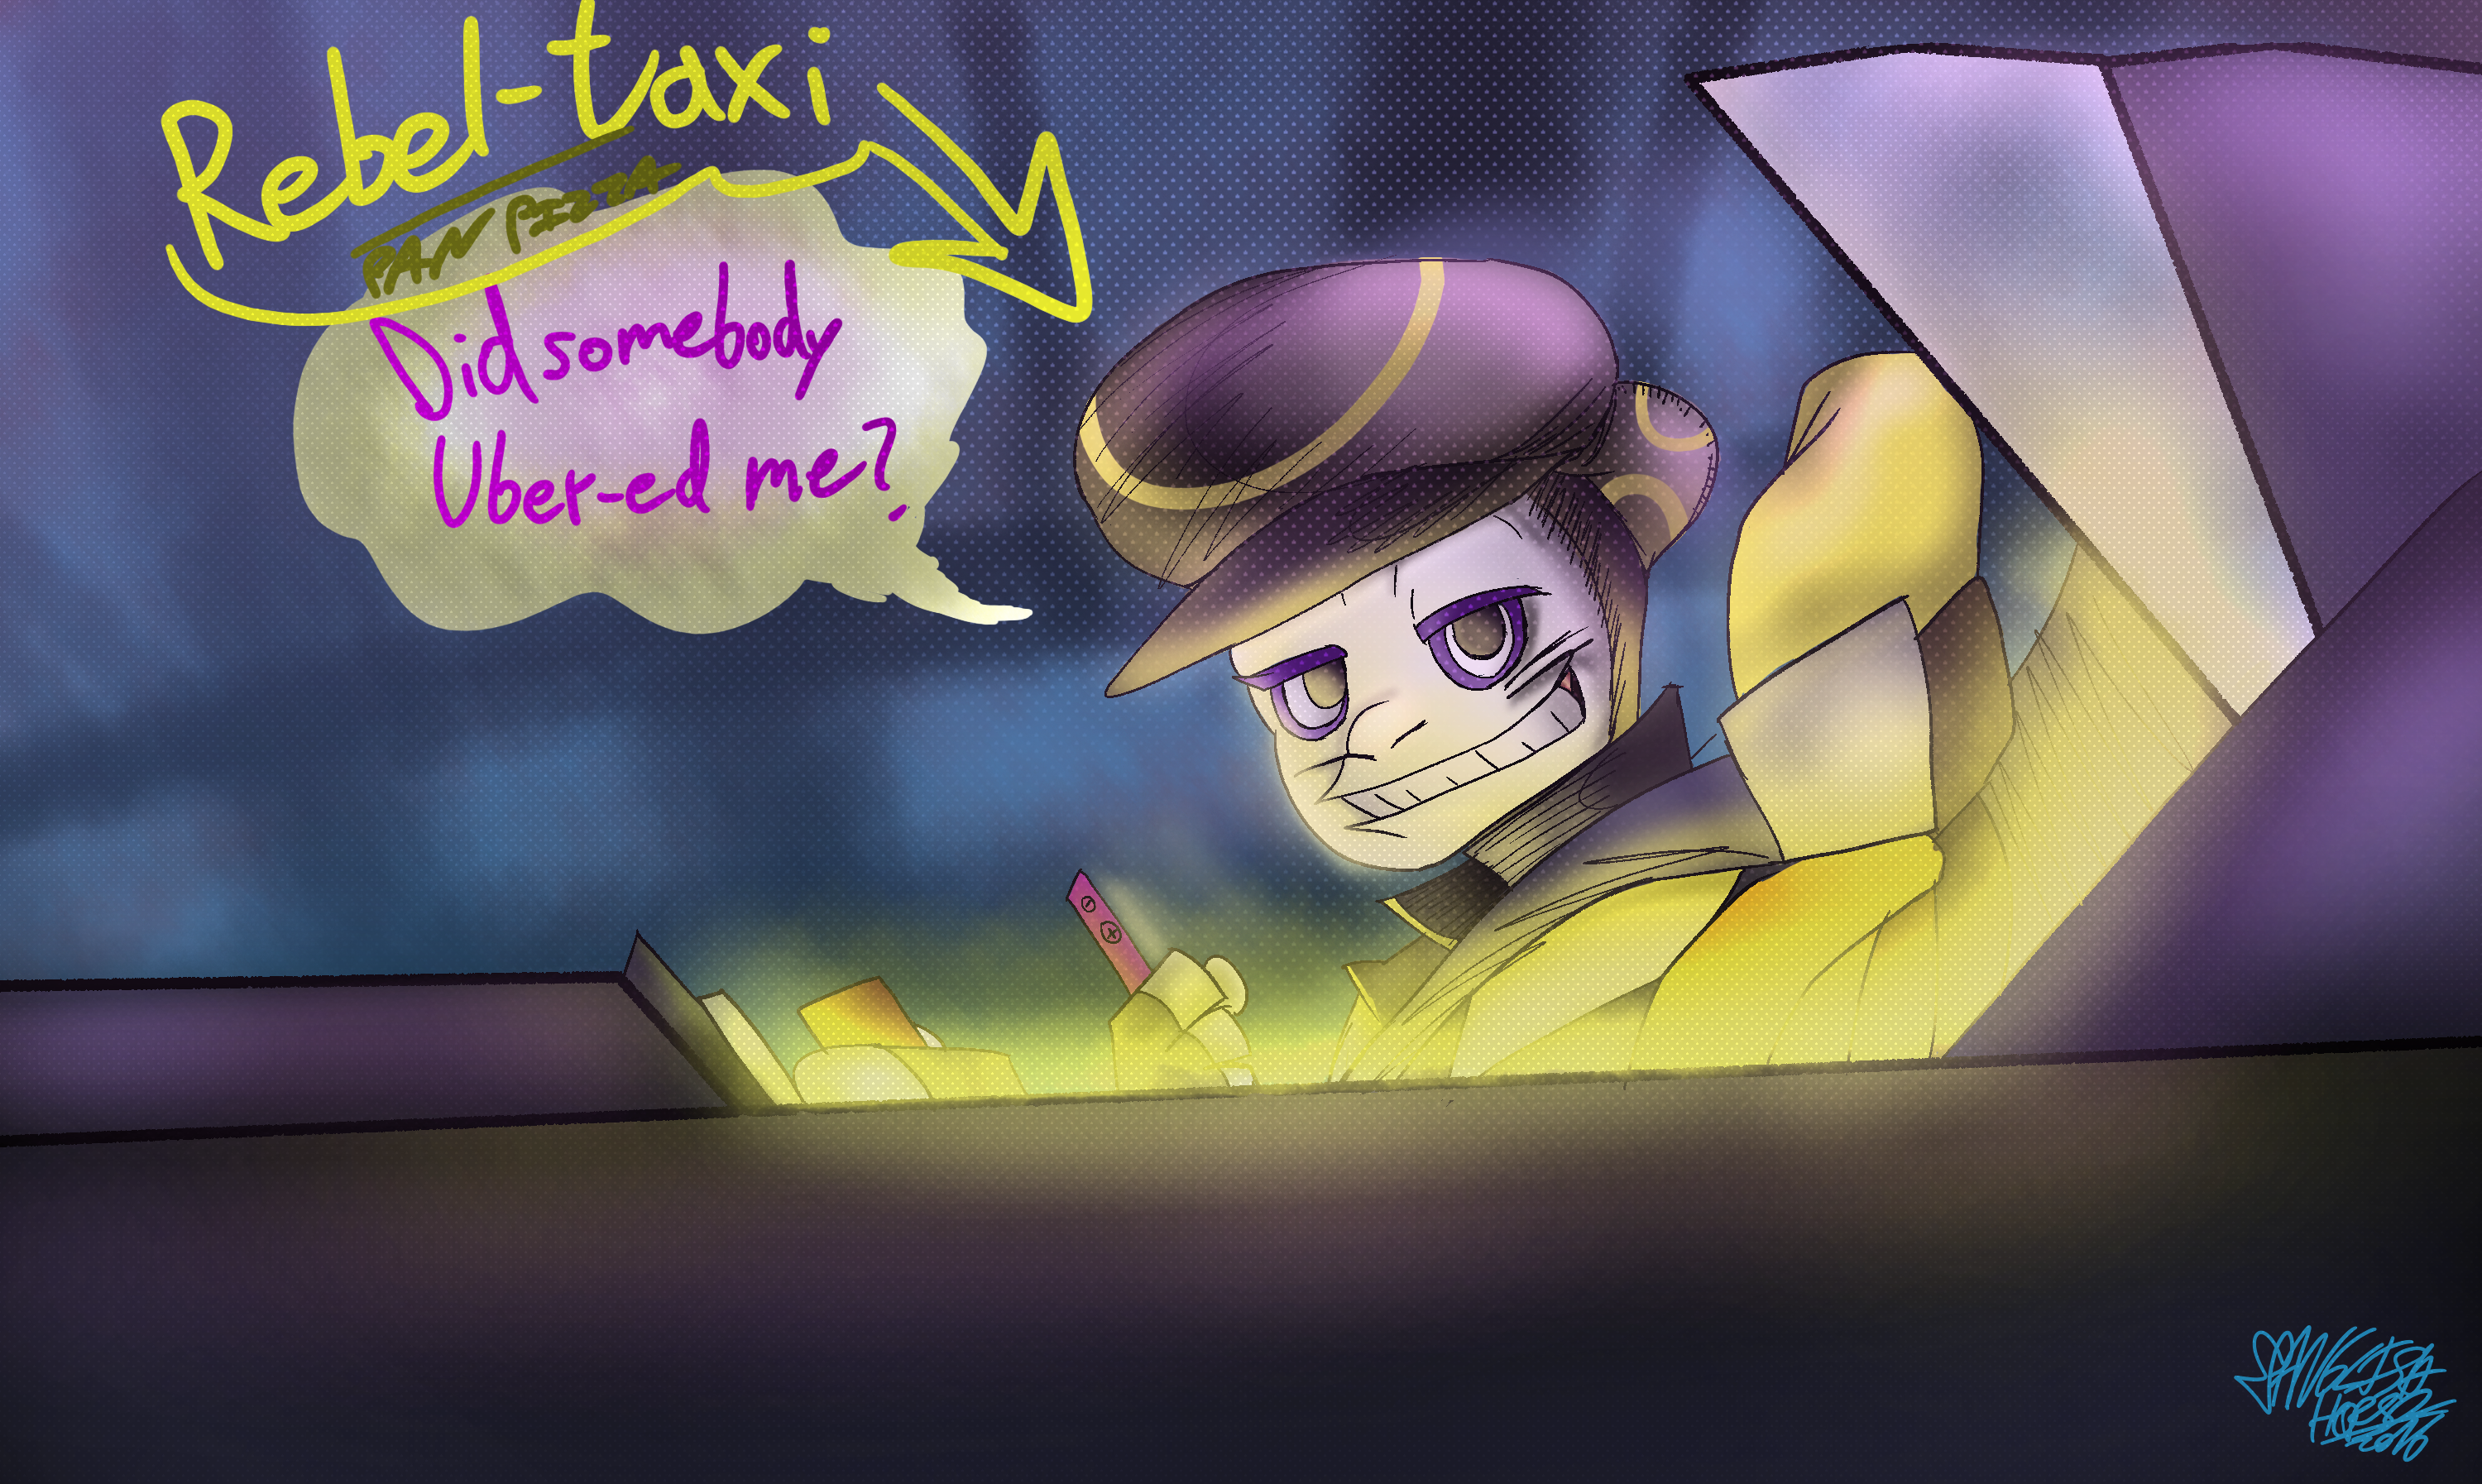 Pan Pizza Party Rebel-Taxi 12 03 2016